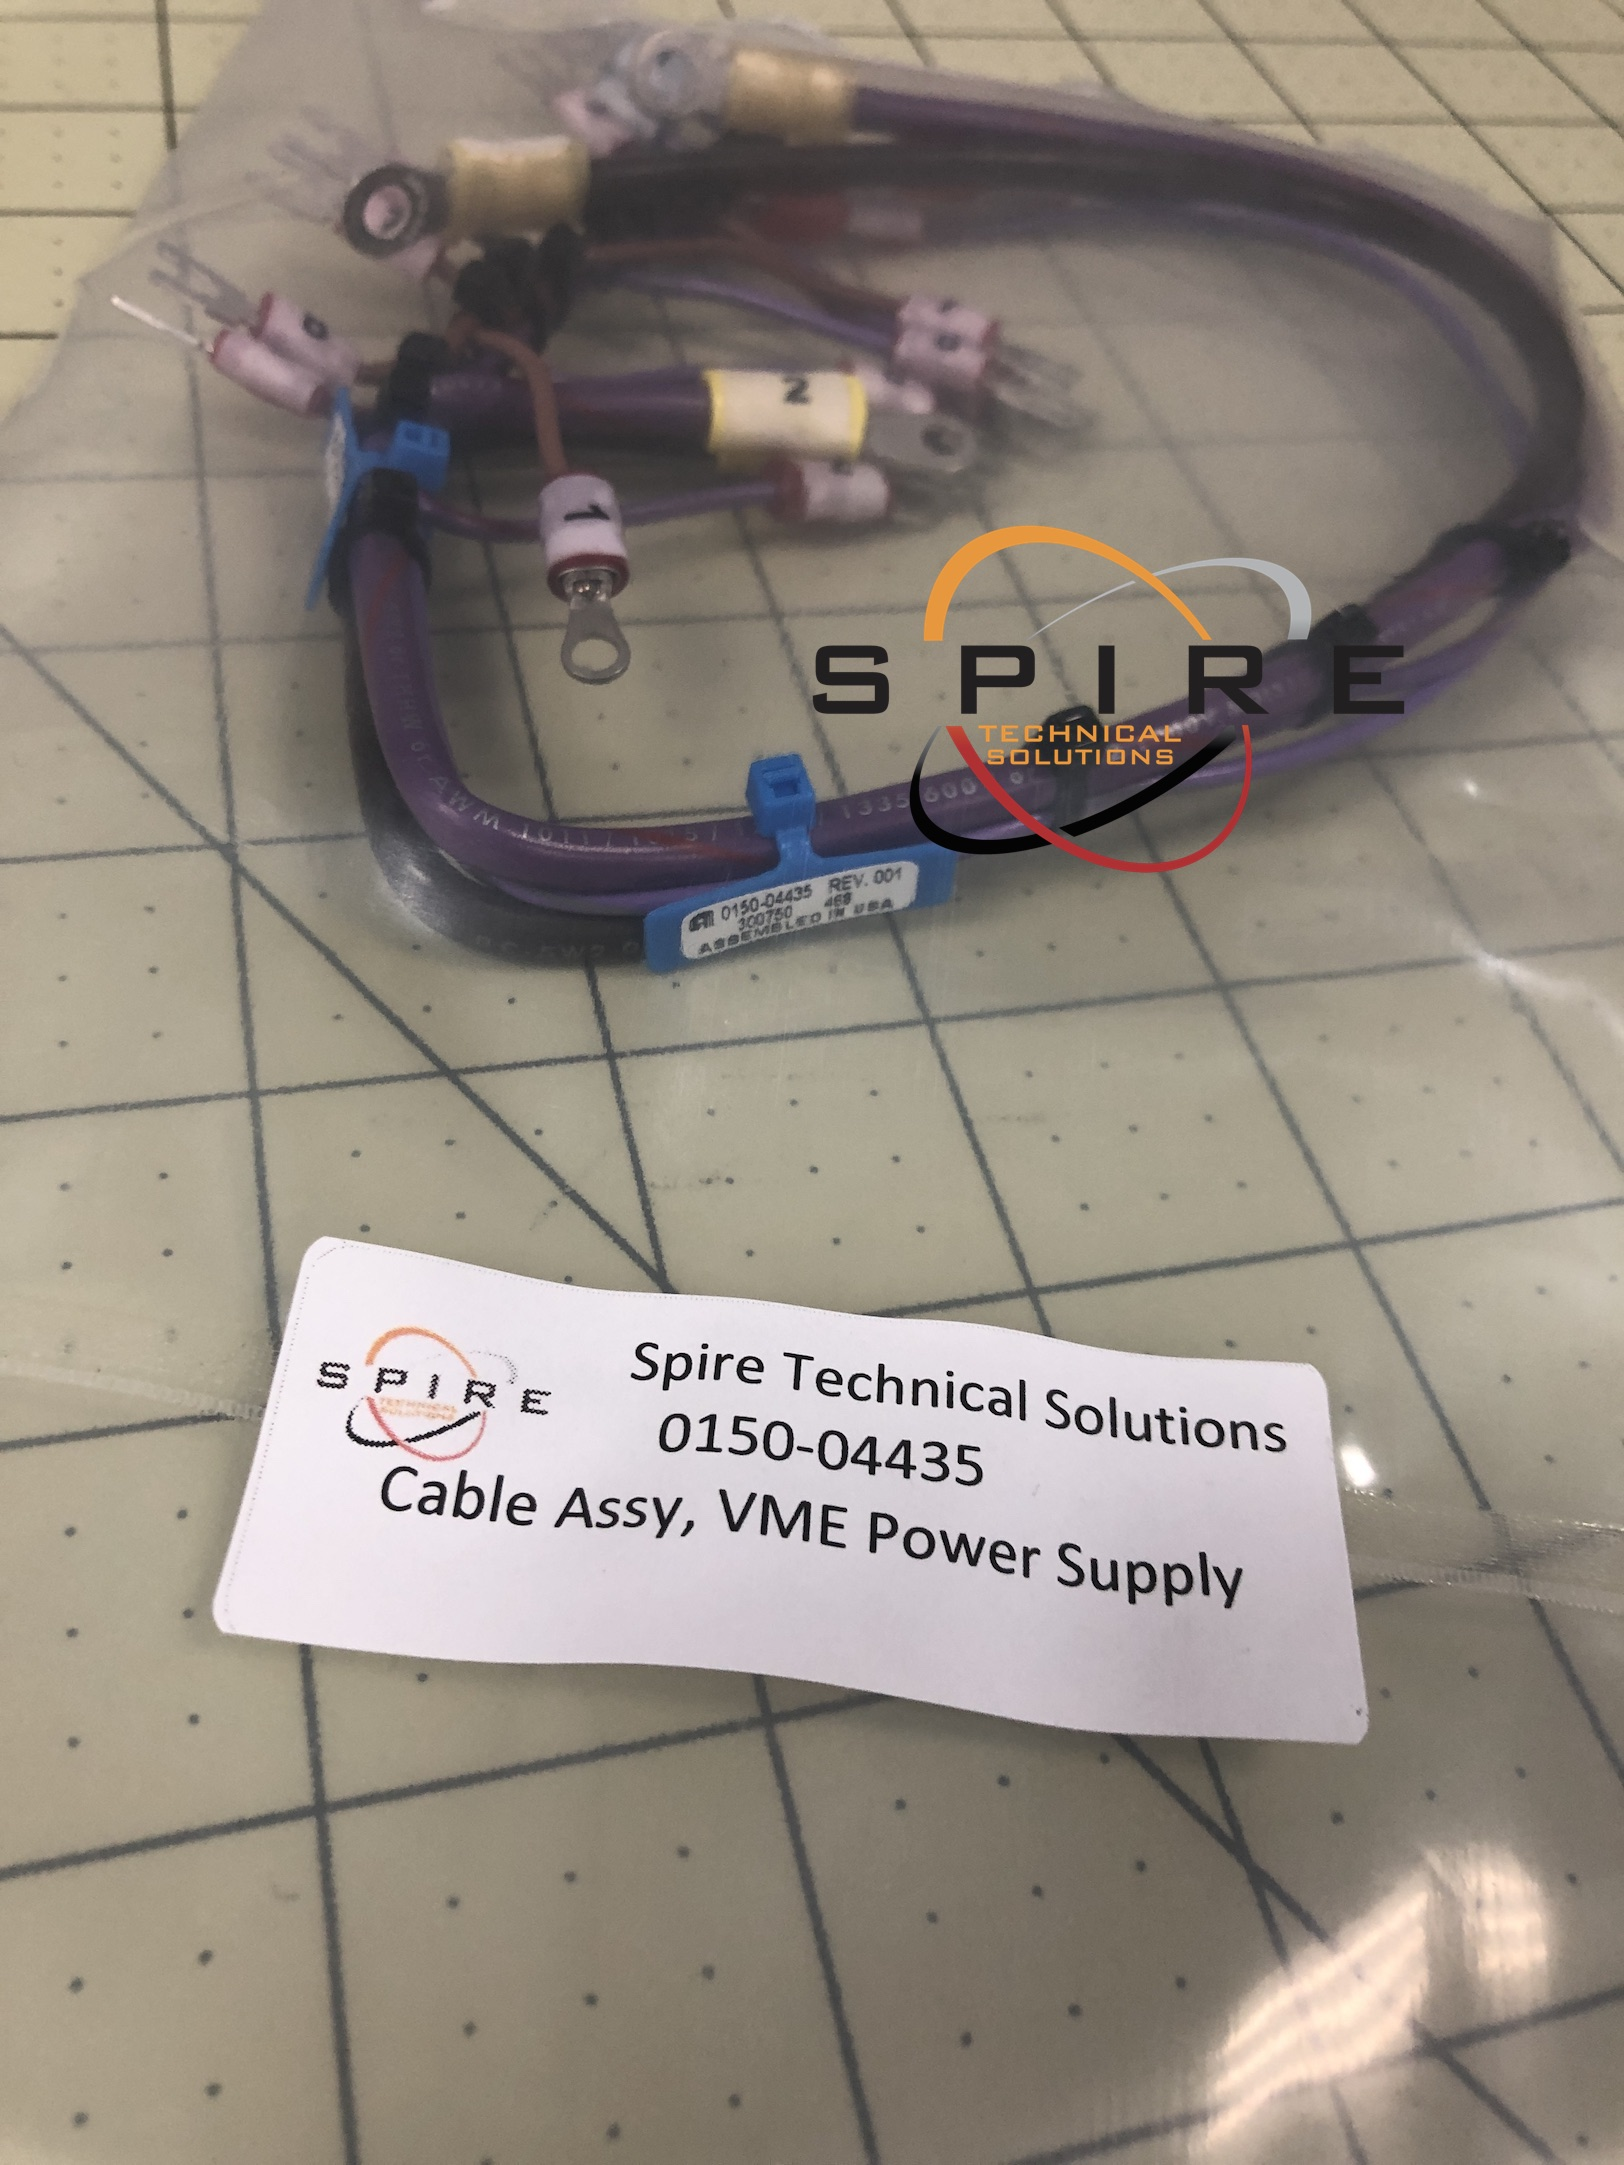 Cable Assy, VME Power Supply